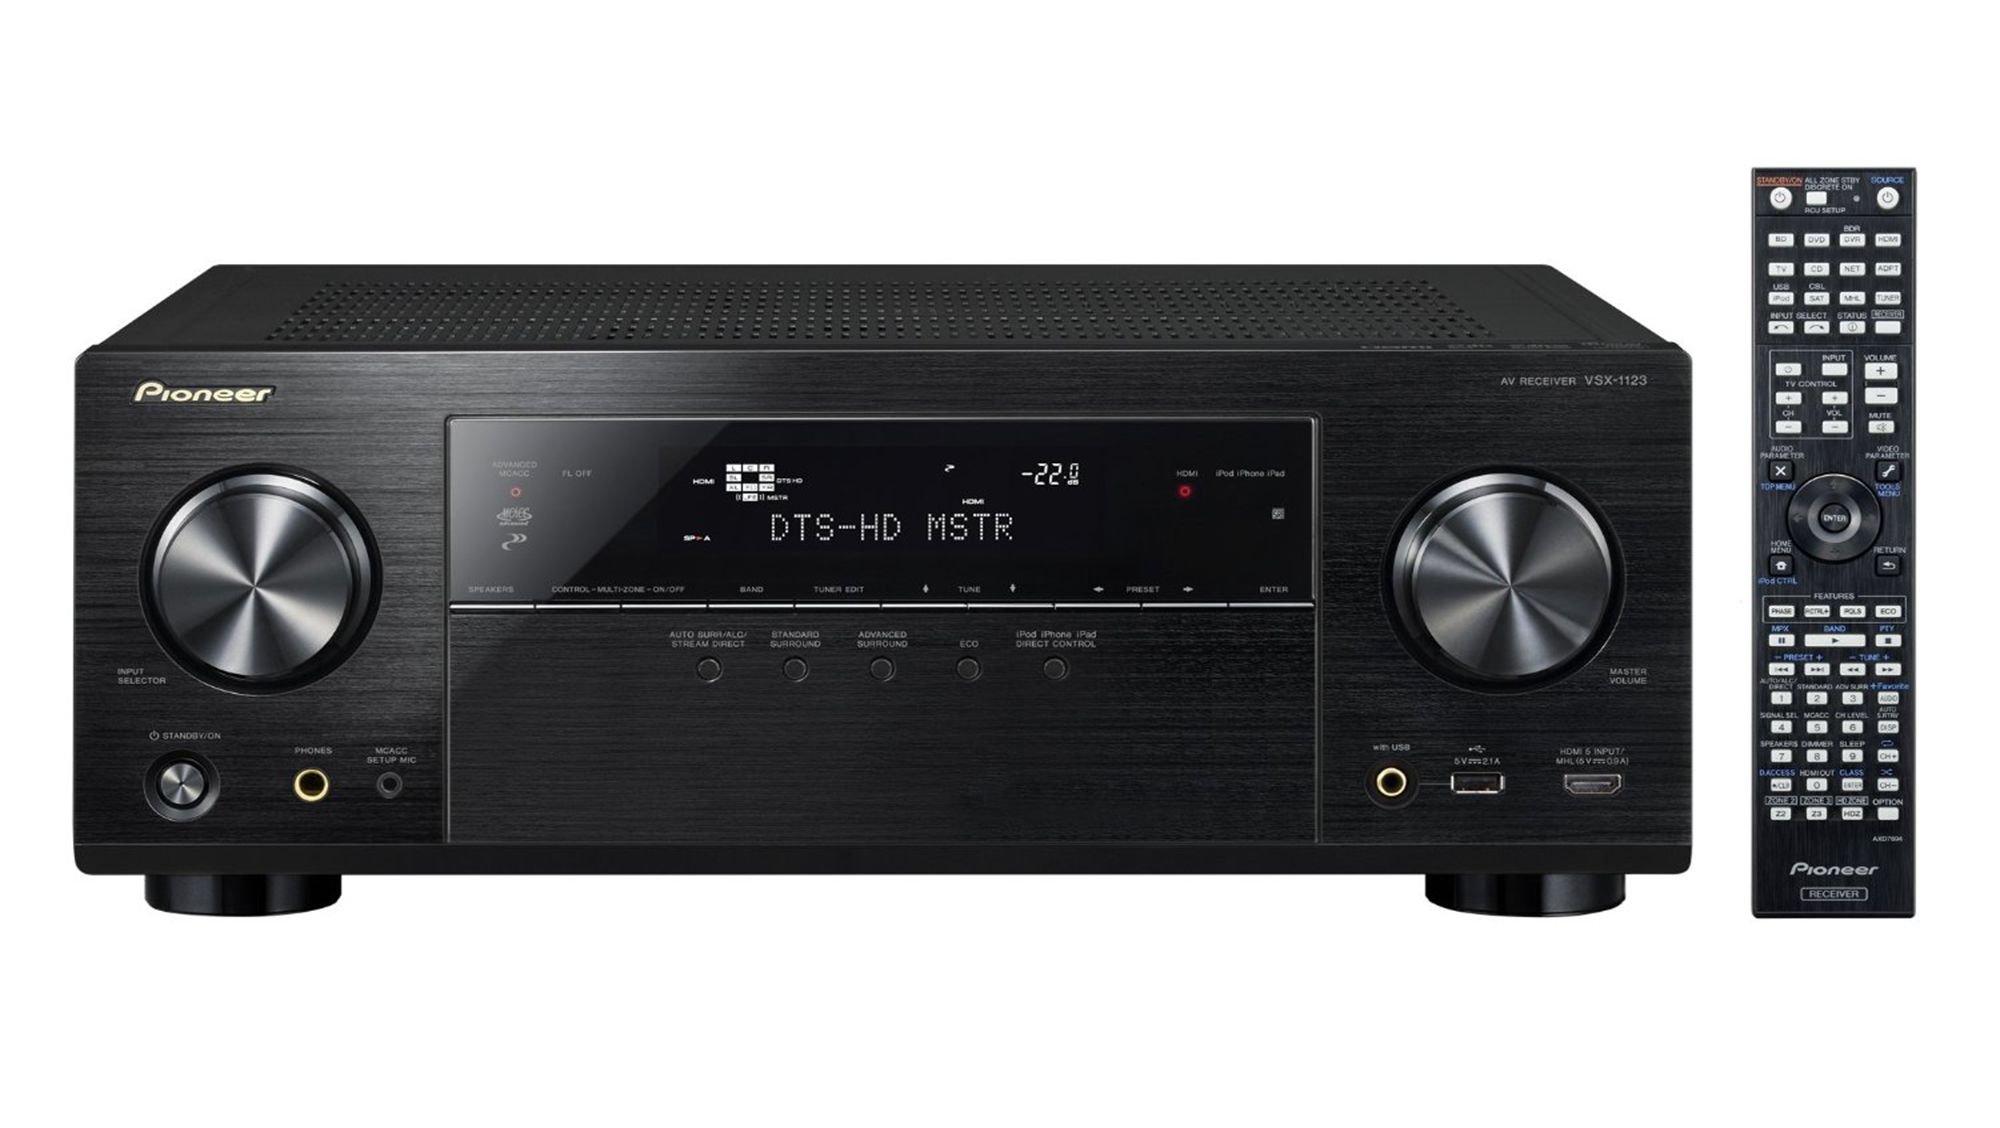 Pioneer 2 audio amplifier models VSA-1123 and VSA-823 Support for 4K,